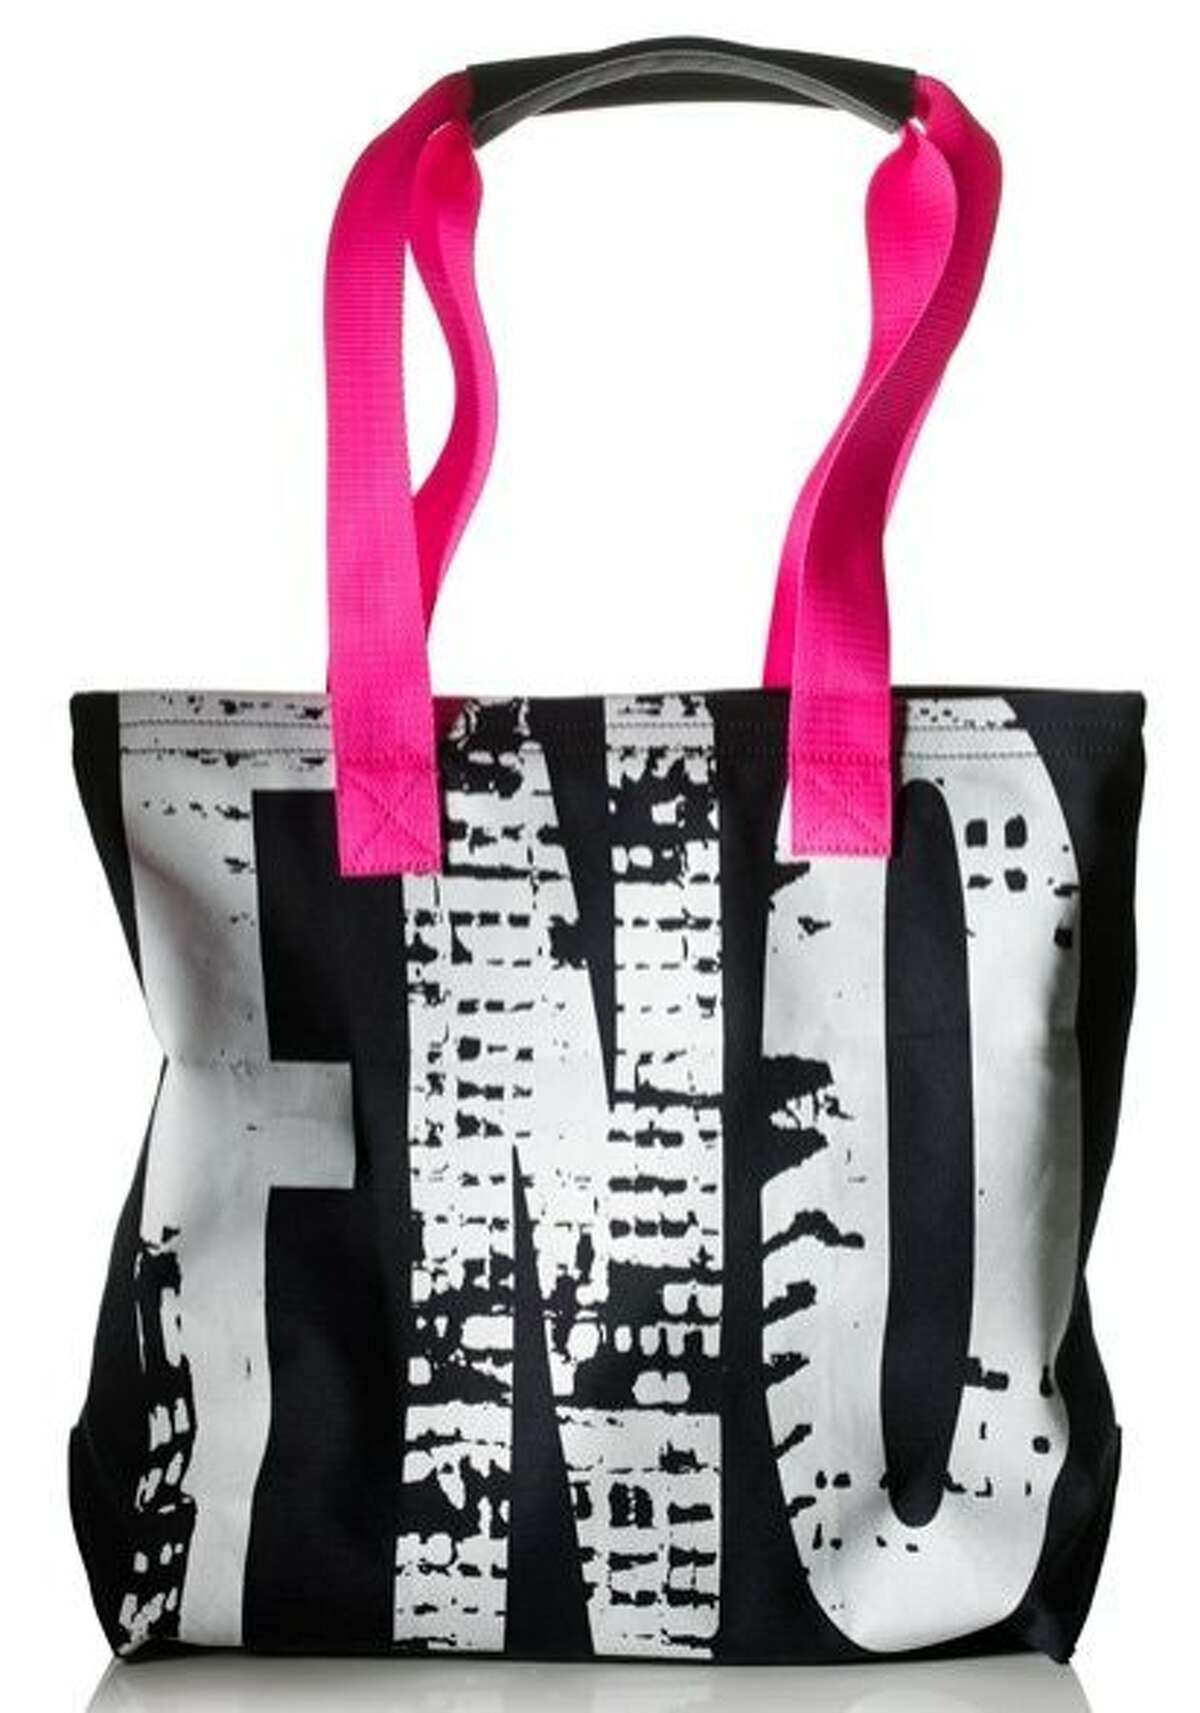 Official 2011 Fashion's Night Out merchandise